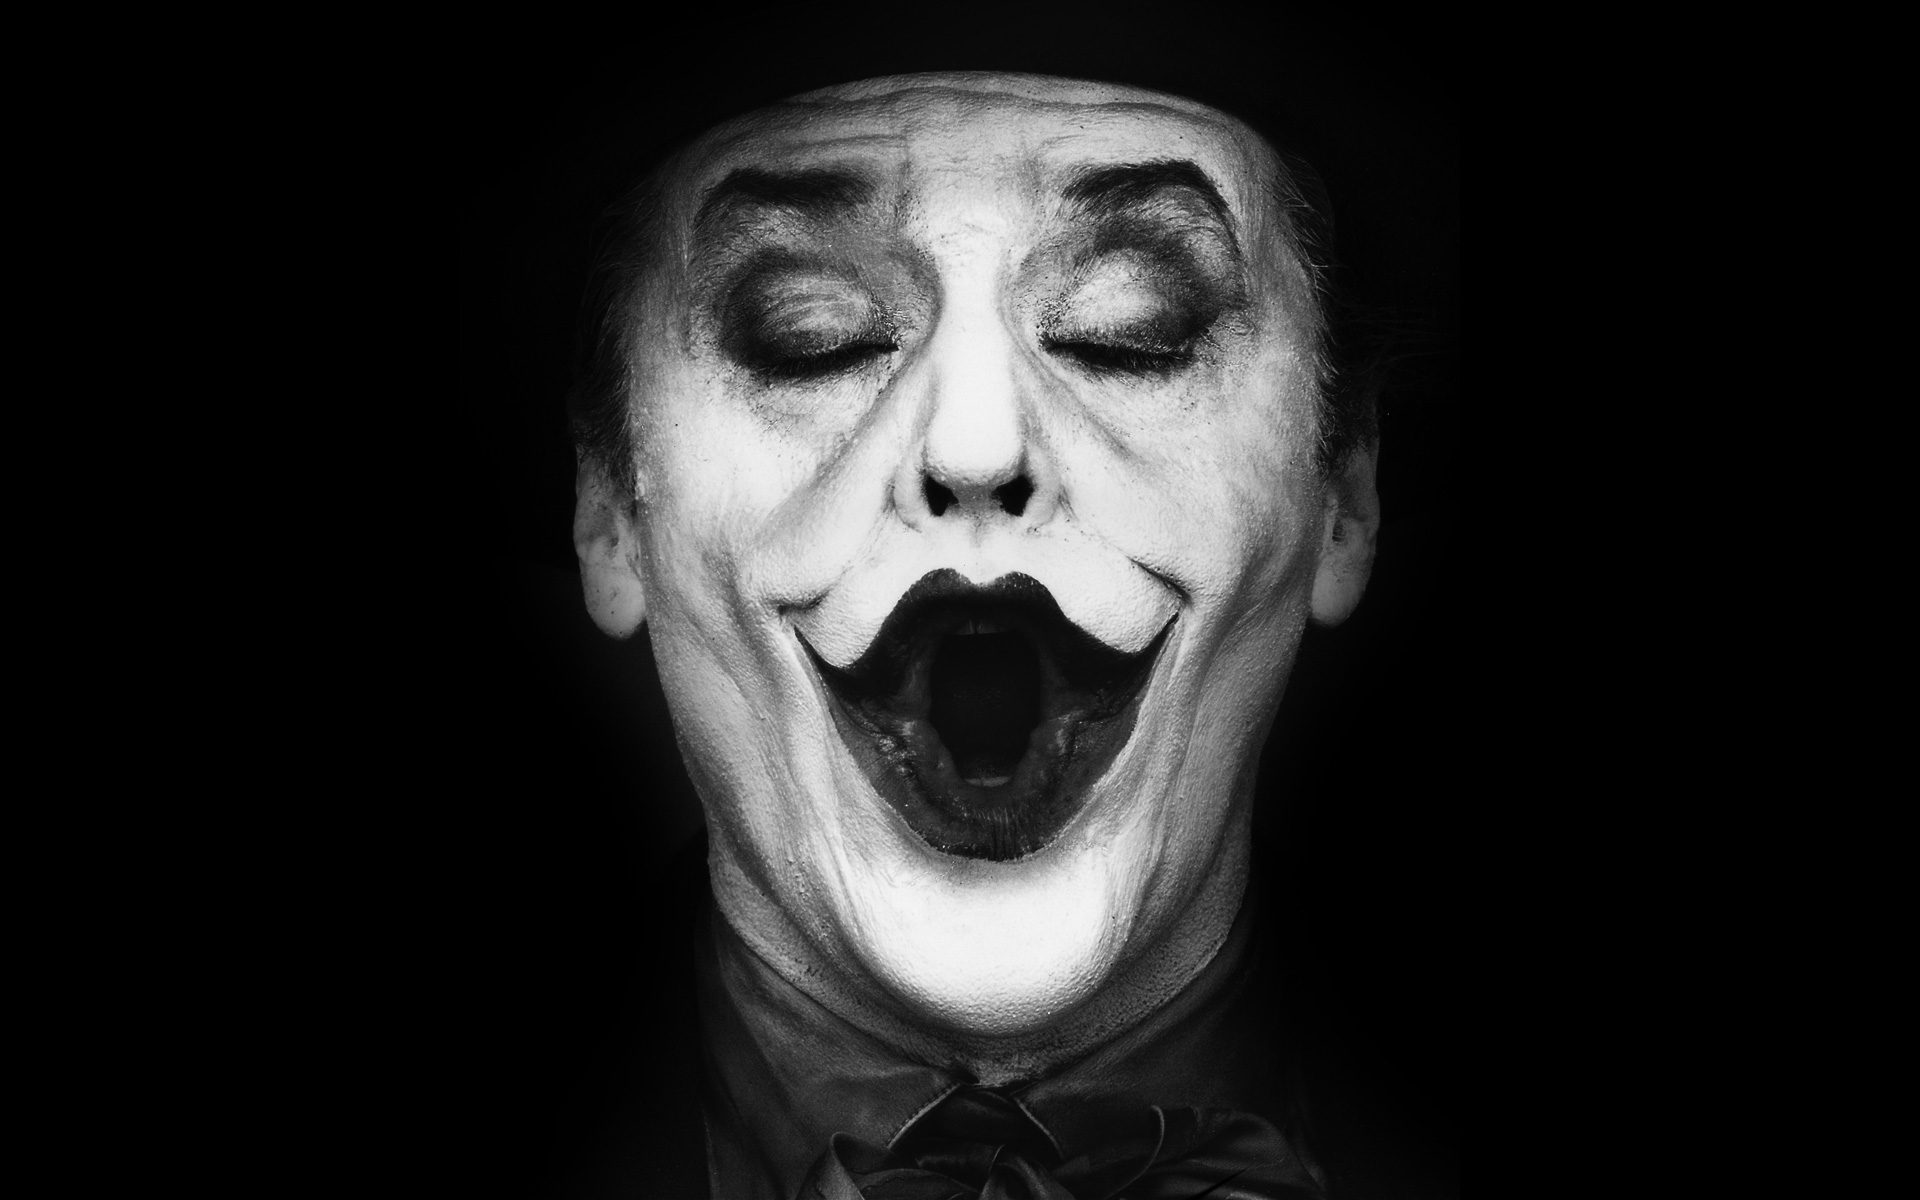 the_joker_jack_nicholson_hd_wallpaper-wide